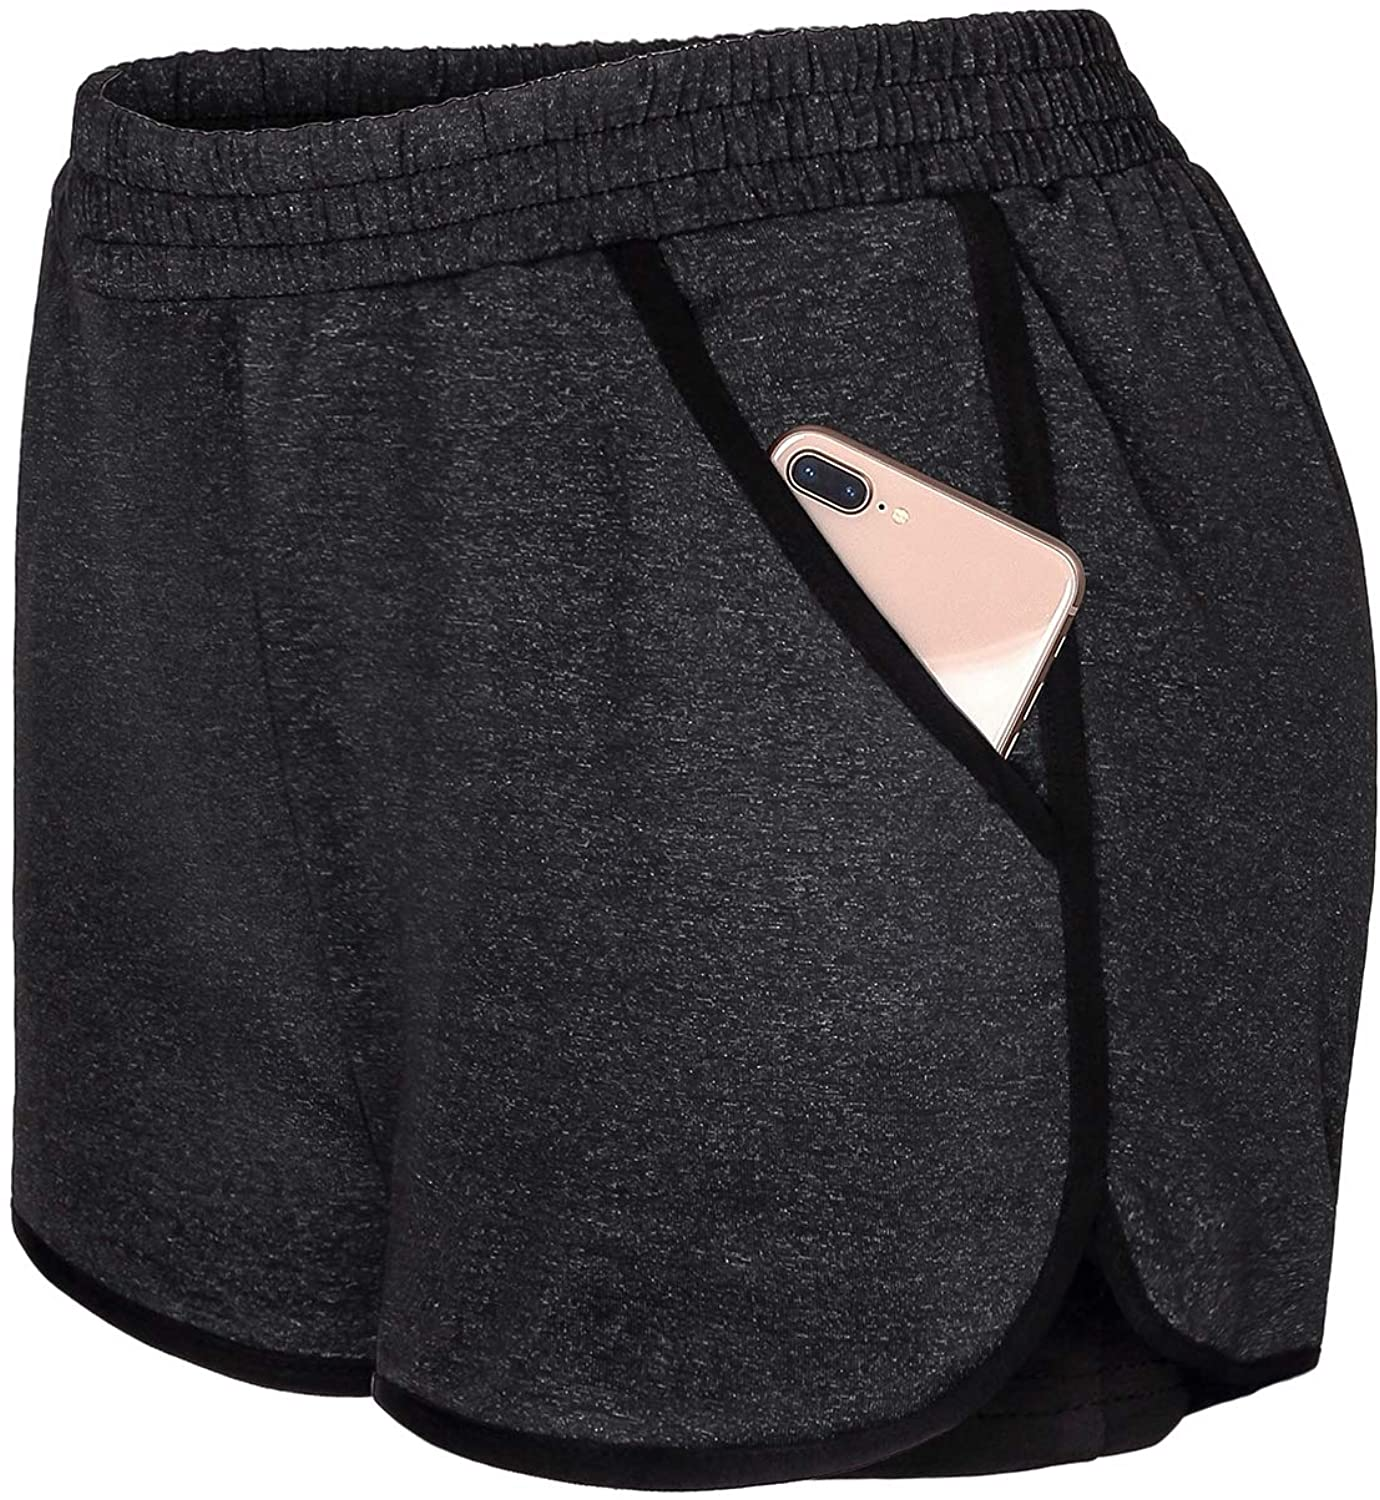 Blevonh Womens 2 in1 sold out Running Athletic Yoga Shorts with Workout P famous